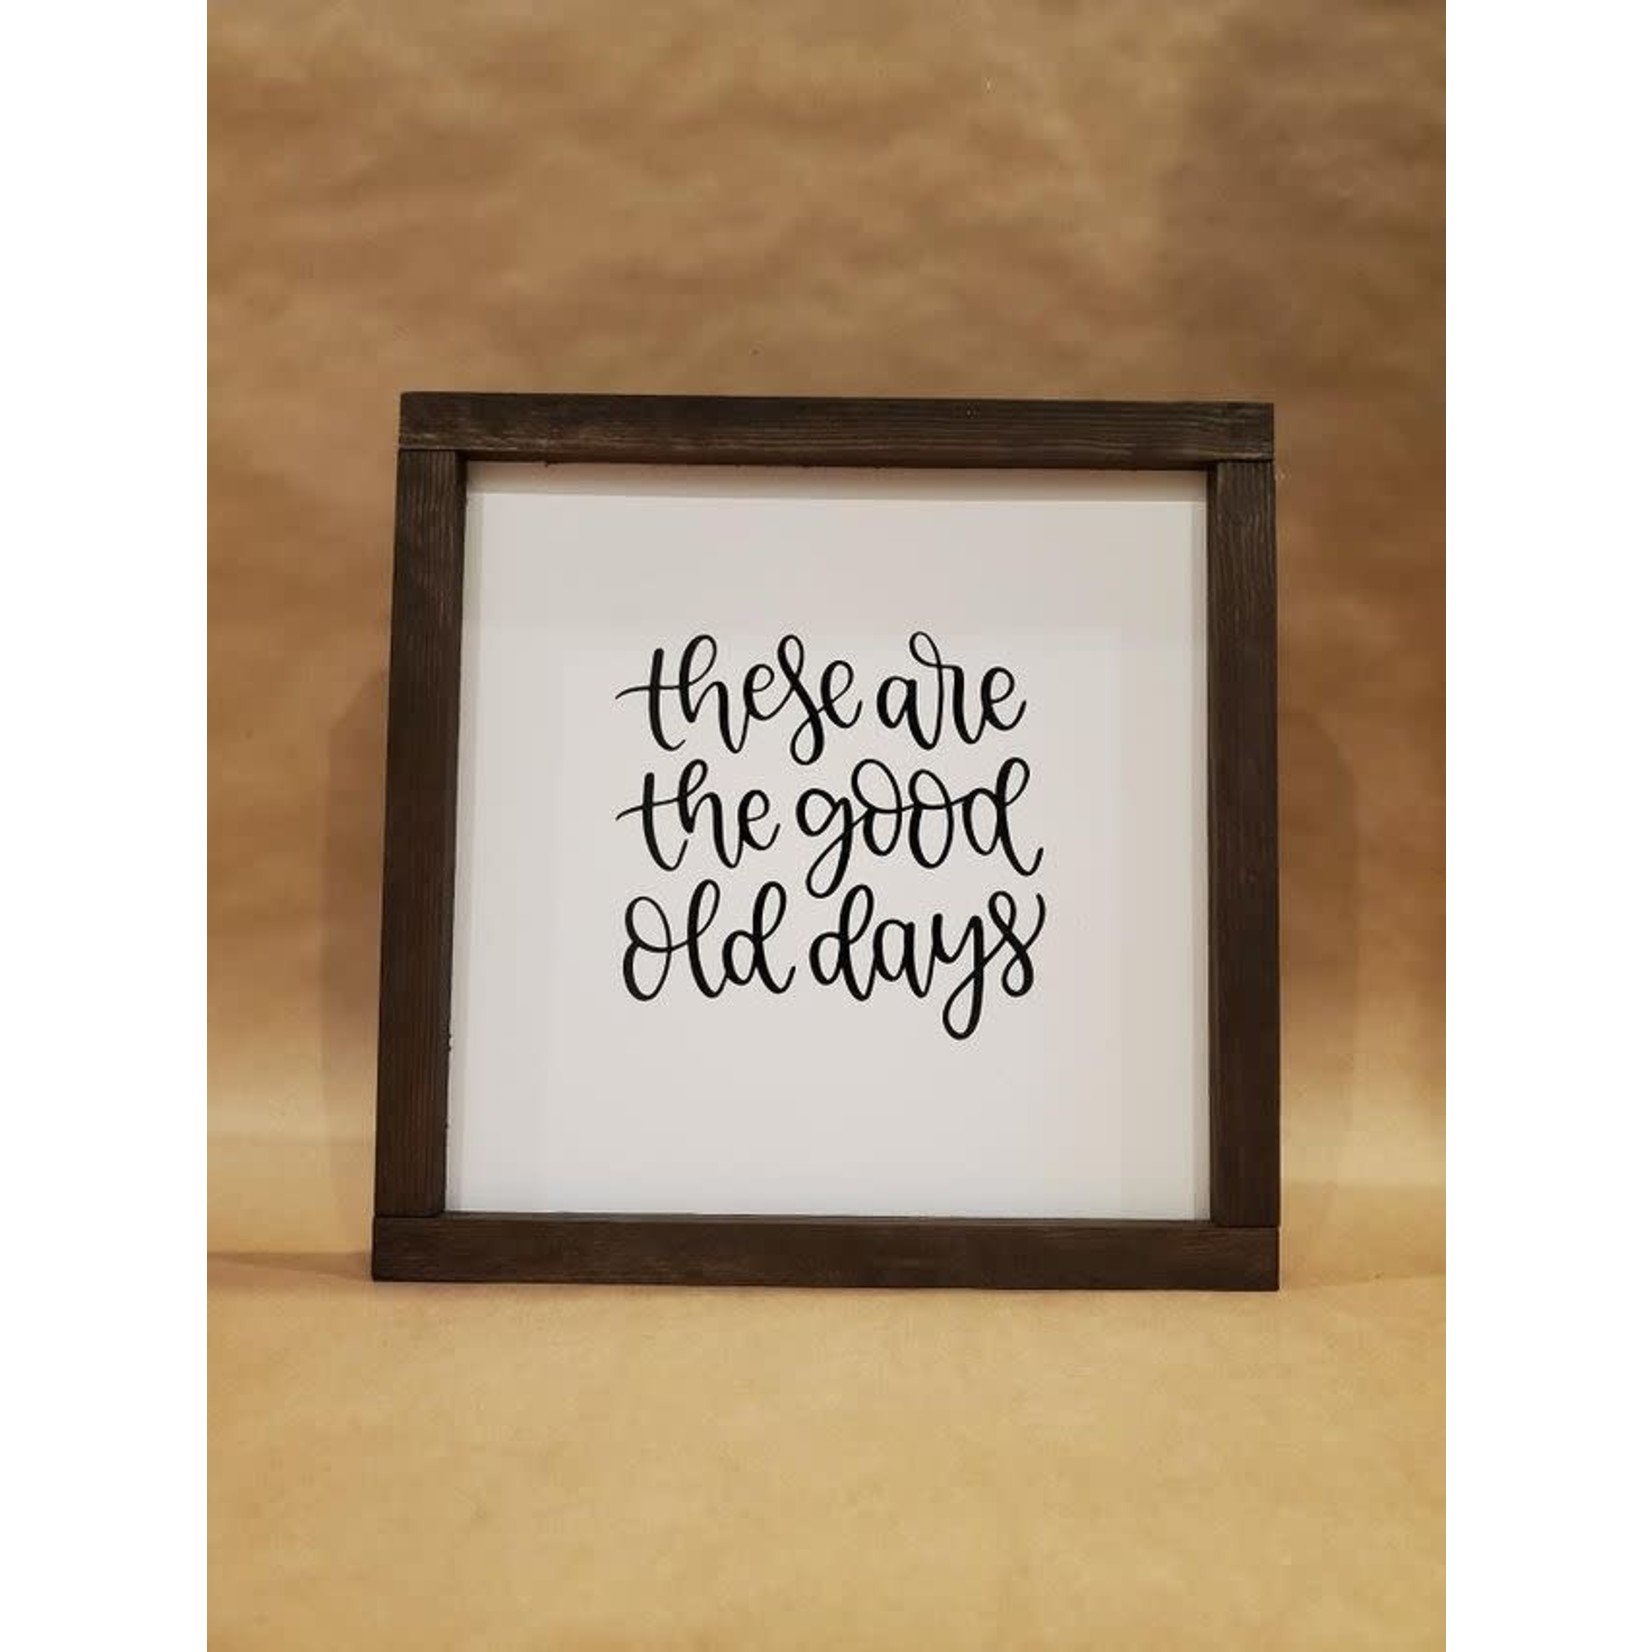 Favourite Things wood These are the good old days 10x10 framed sign